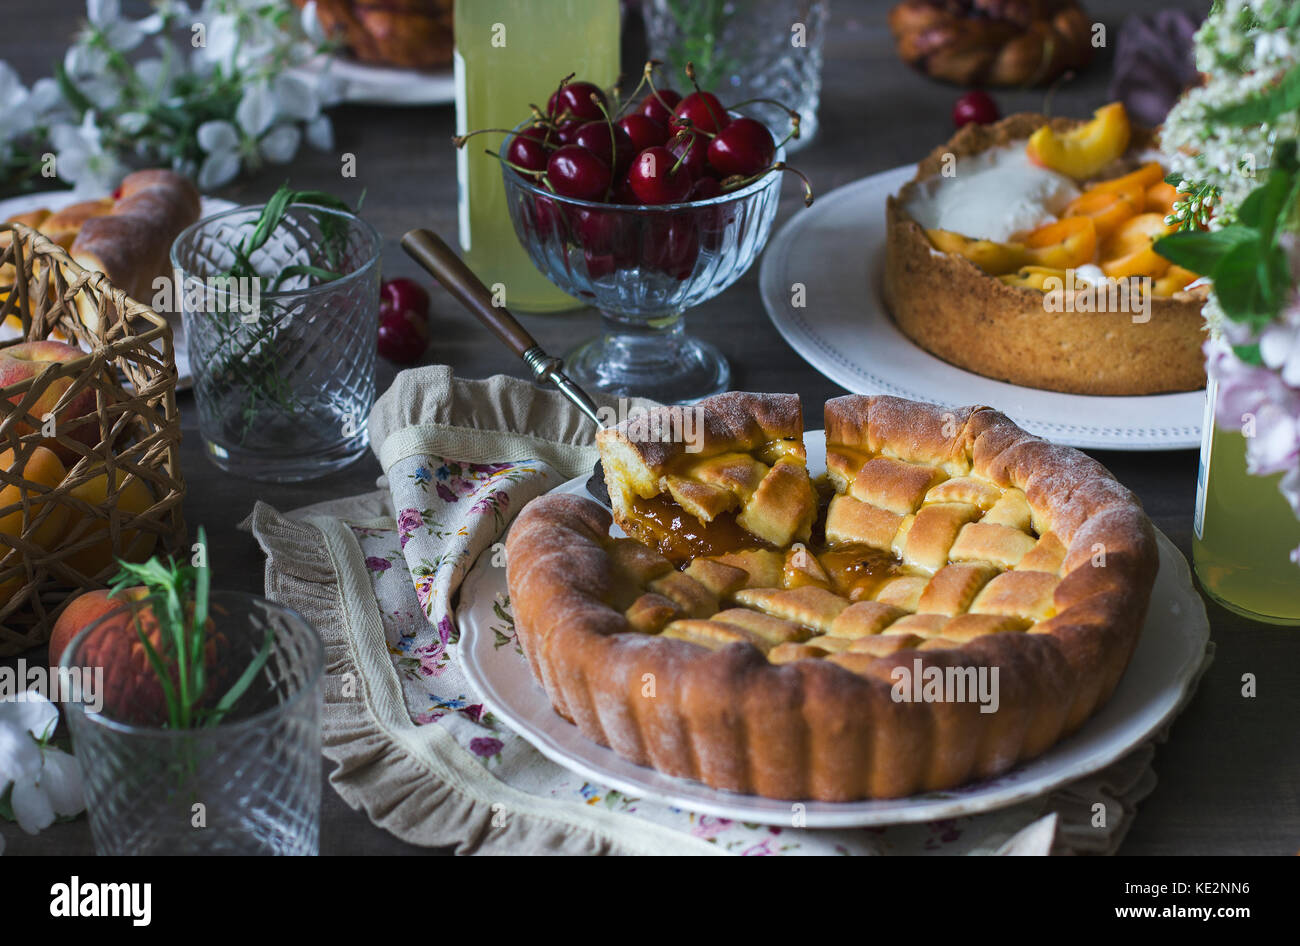 Homemade pie, pastries and food on the festive table Stock Photo